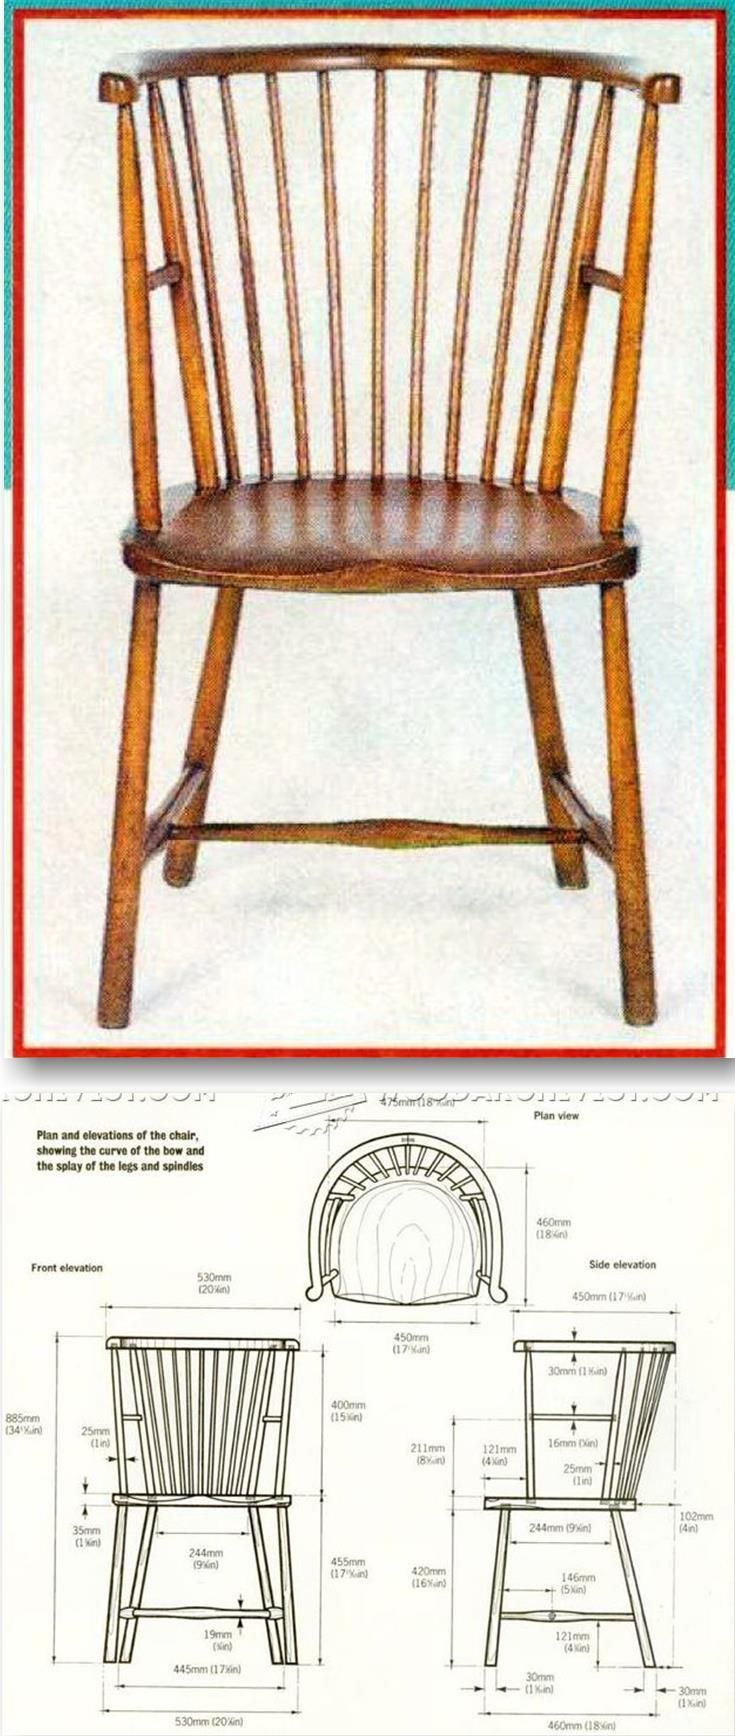 Arts and crafts furniture plans - Arts And Crafts Reading Chair Plans Furniture Plans And Projects Woodarchivist Com